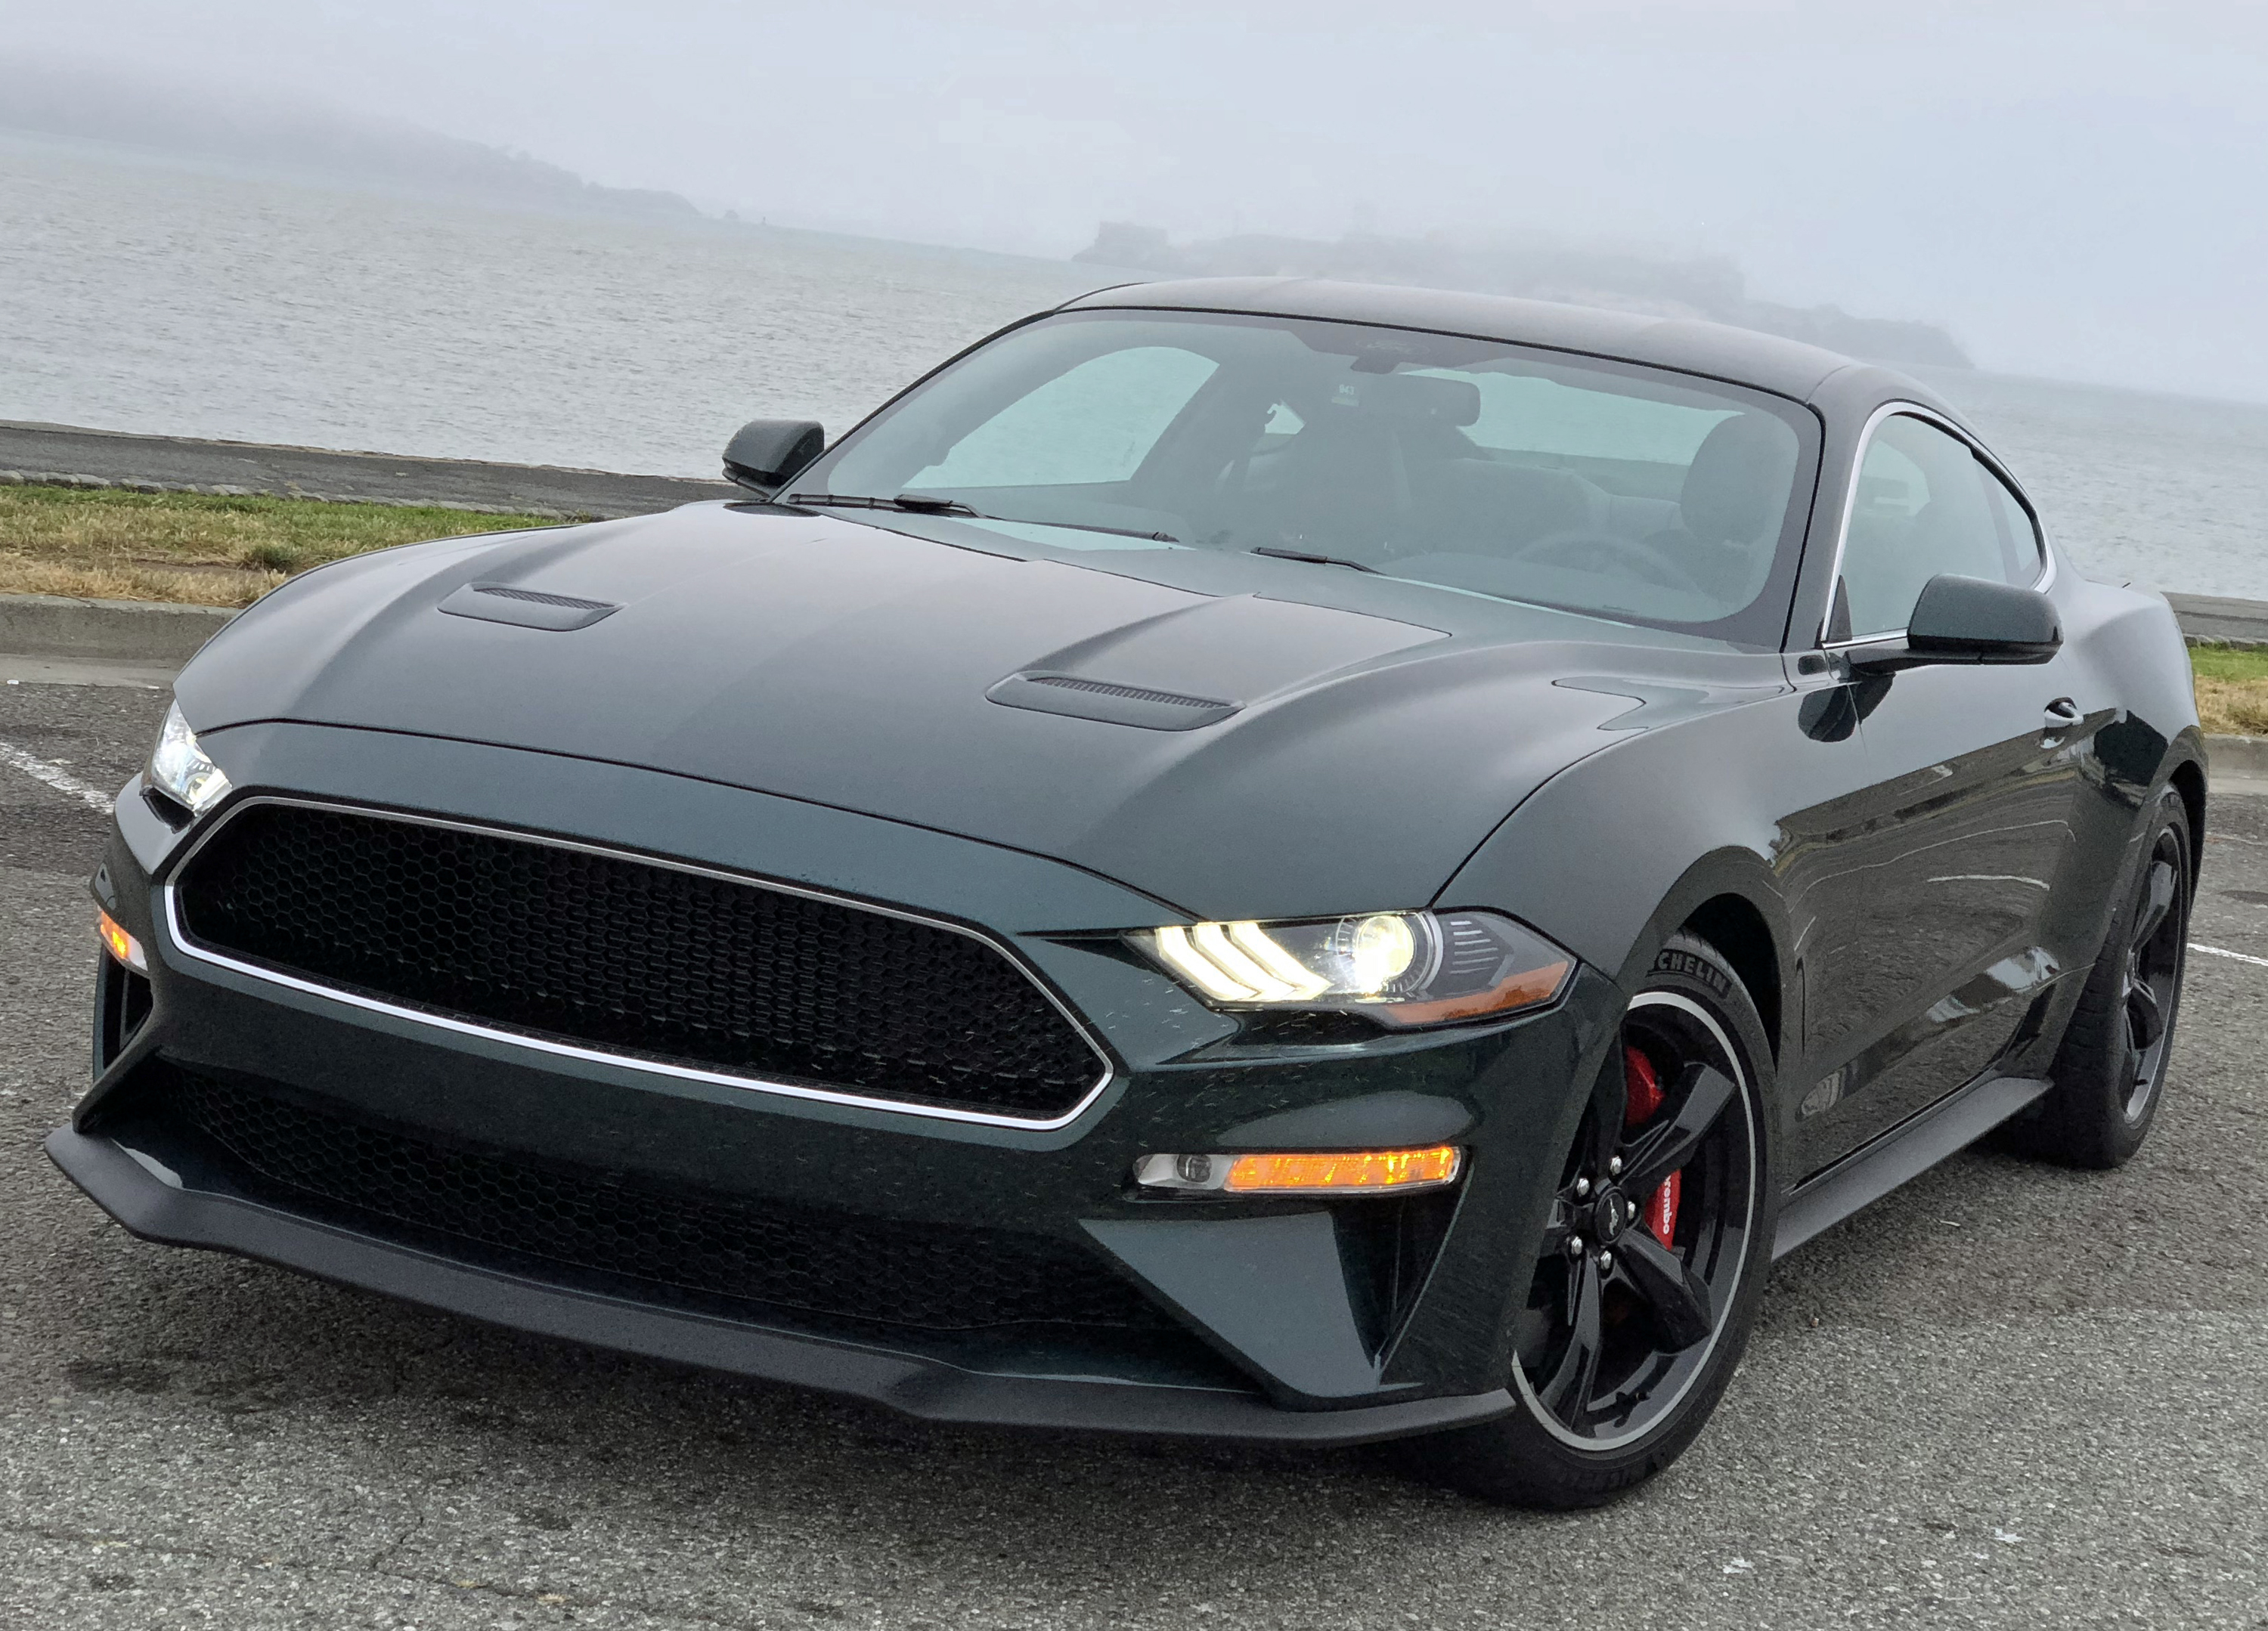 2019 ford mustang bullitt the king of cool in car form karl on cars. Black Bedroom Furniture Sets. Home Design Ideas